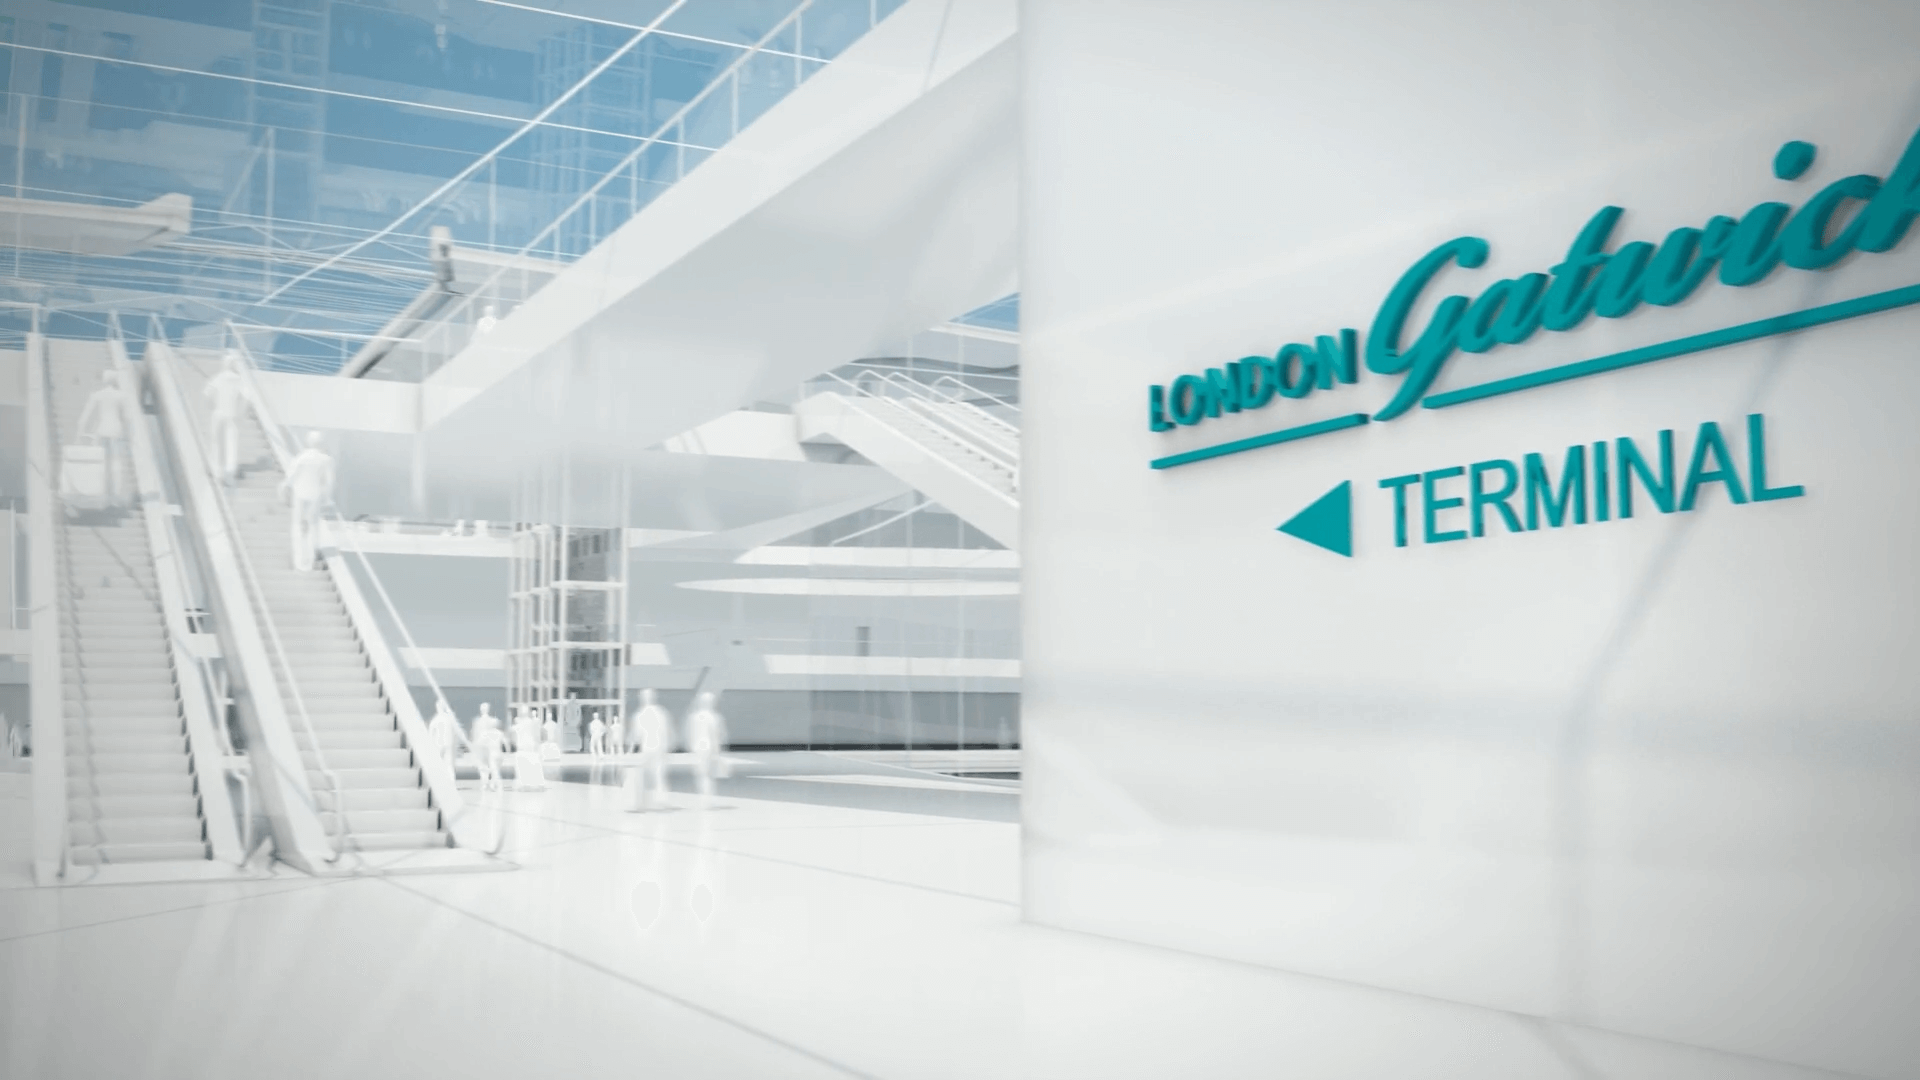 London Gatwick unveils plans to become world's most